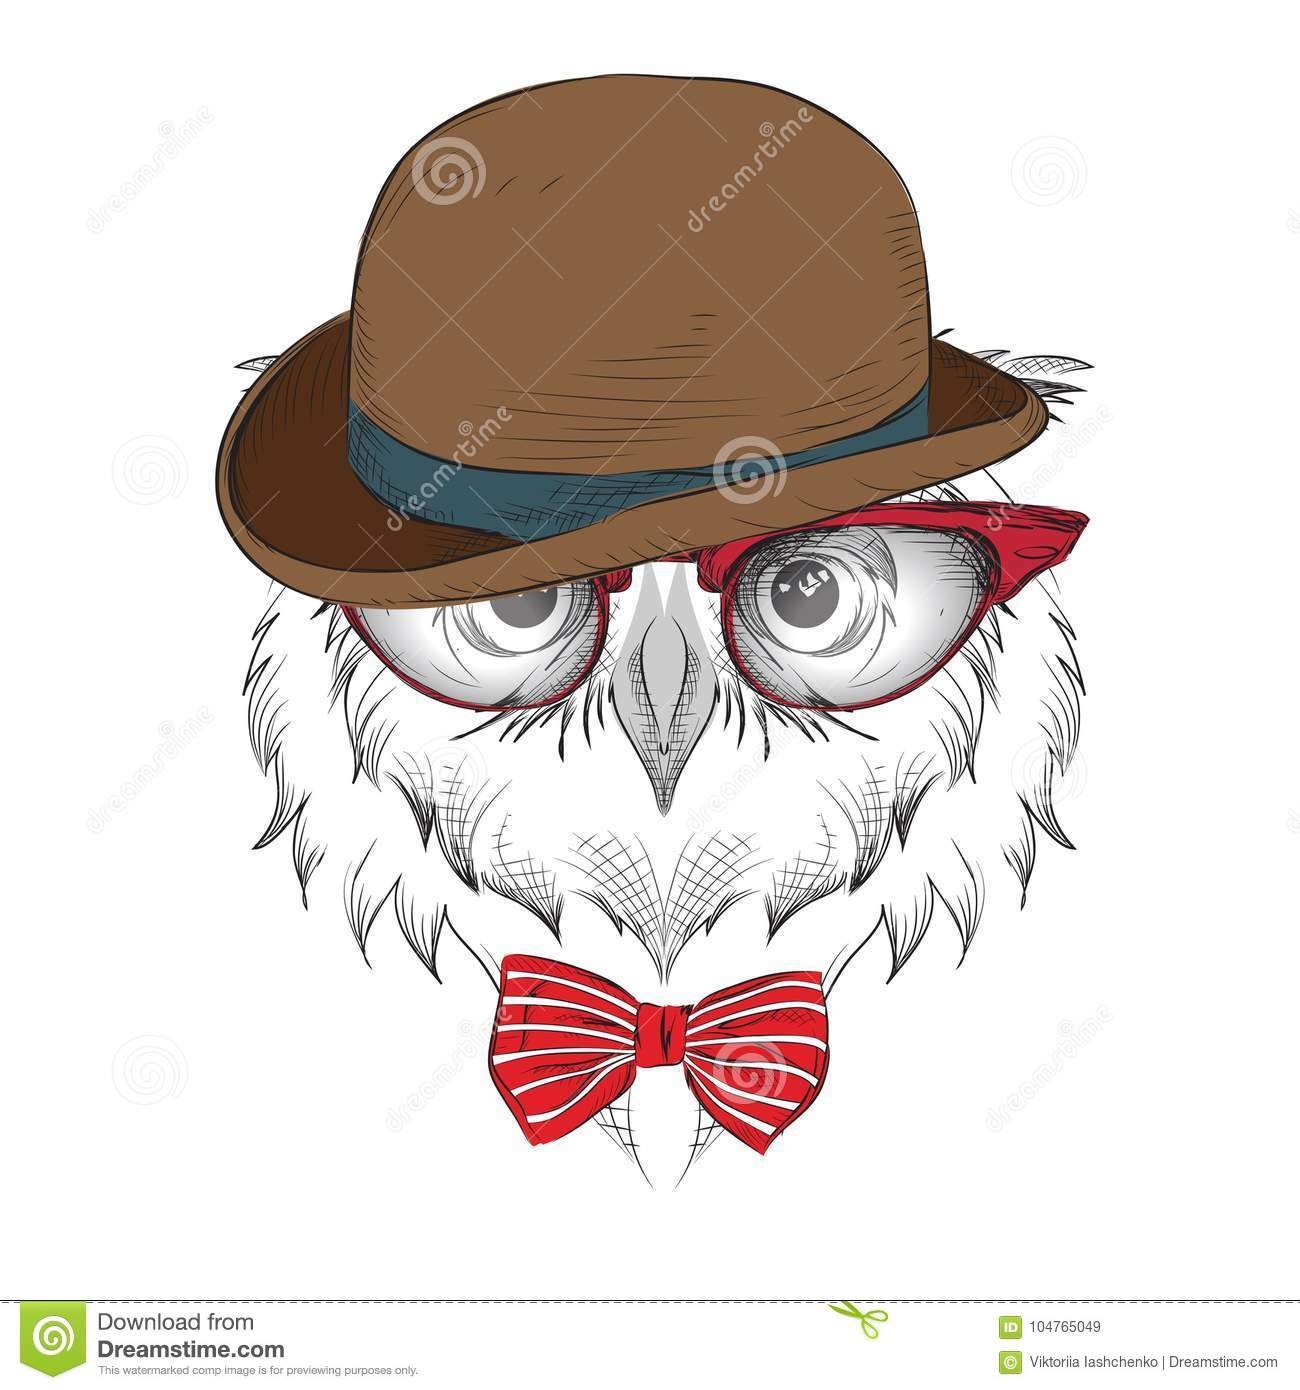 0018f019762 Image Portrait owl in the glasses and Hat.   african   indian   totem    tattoo design. Use for print